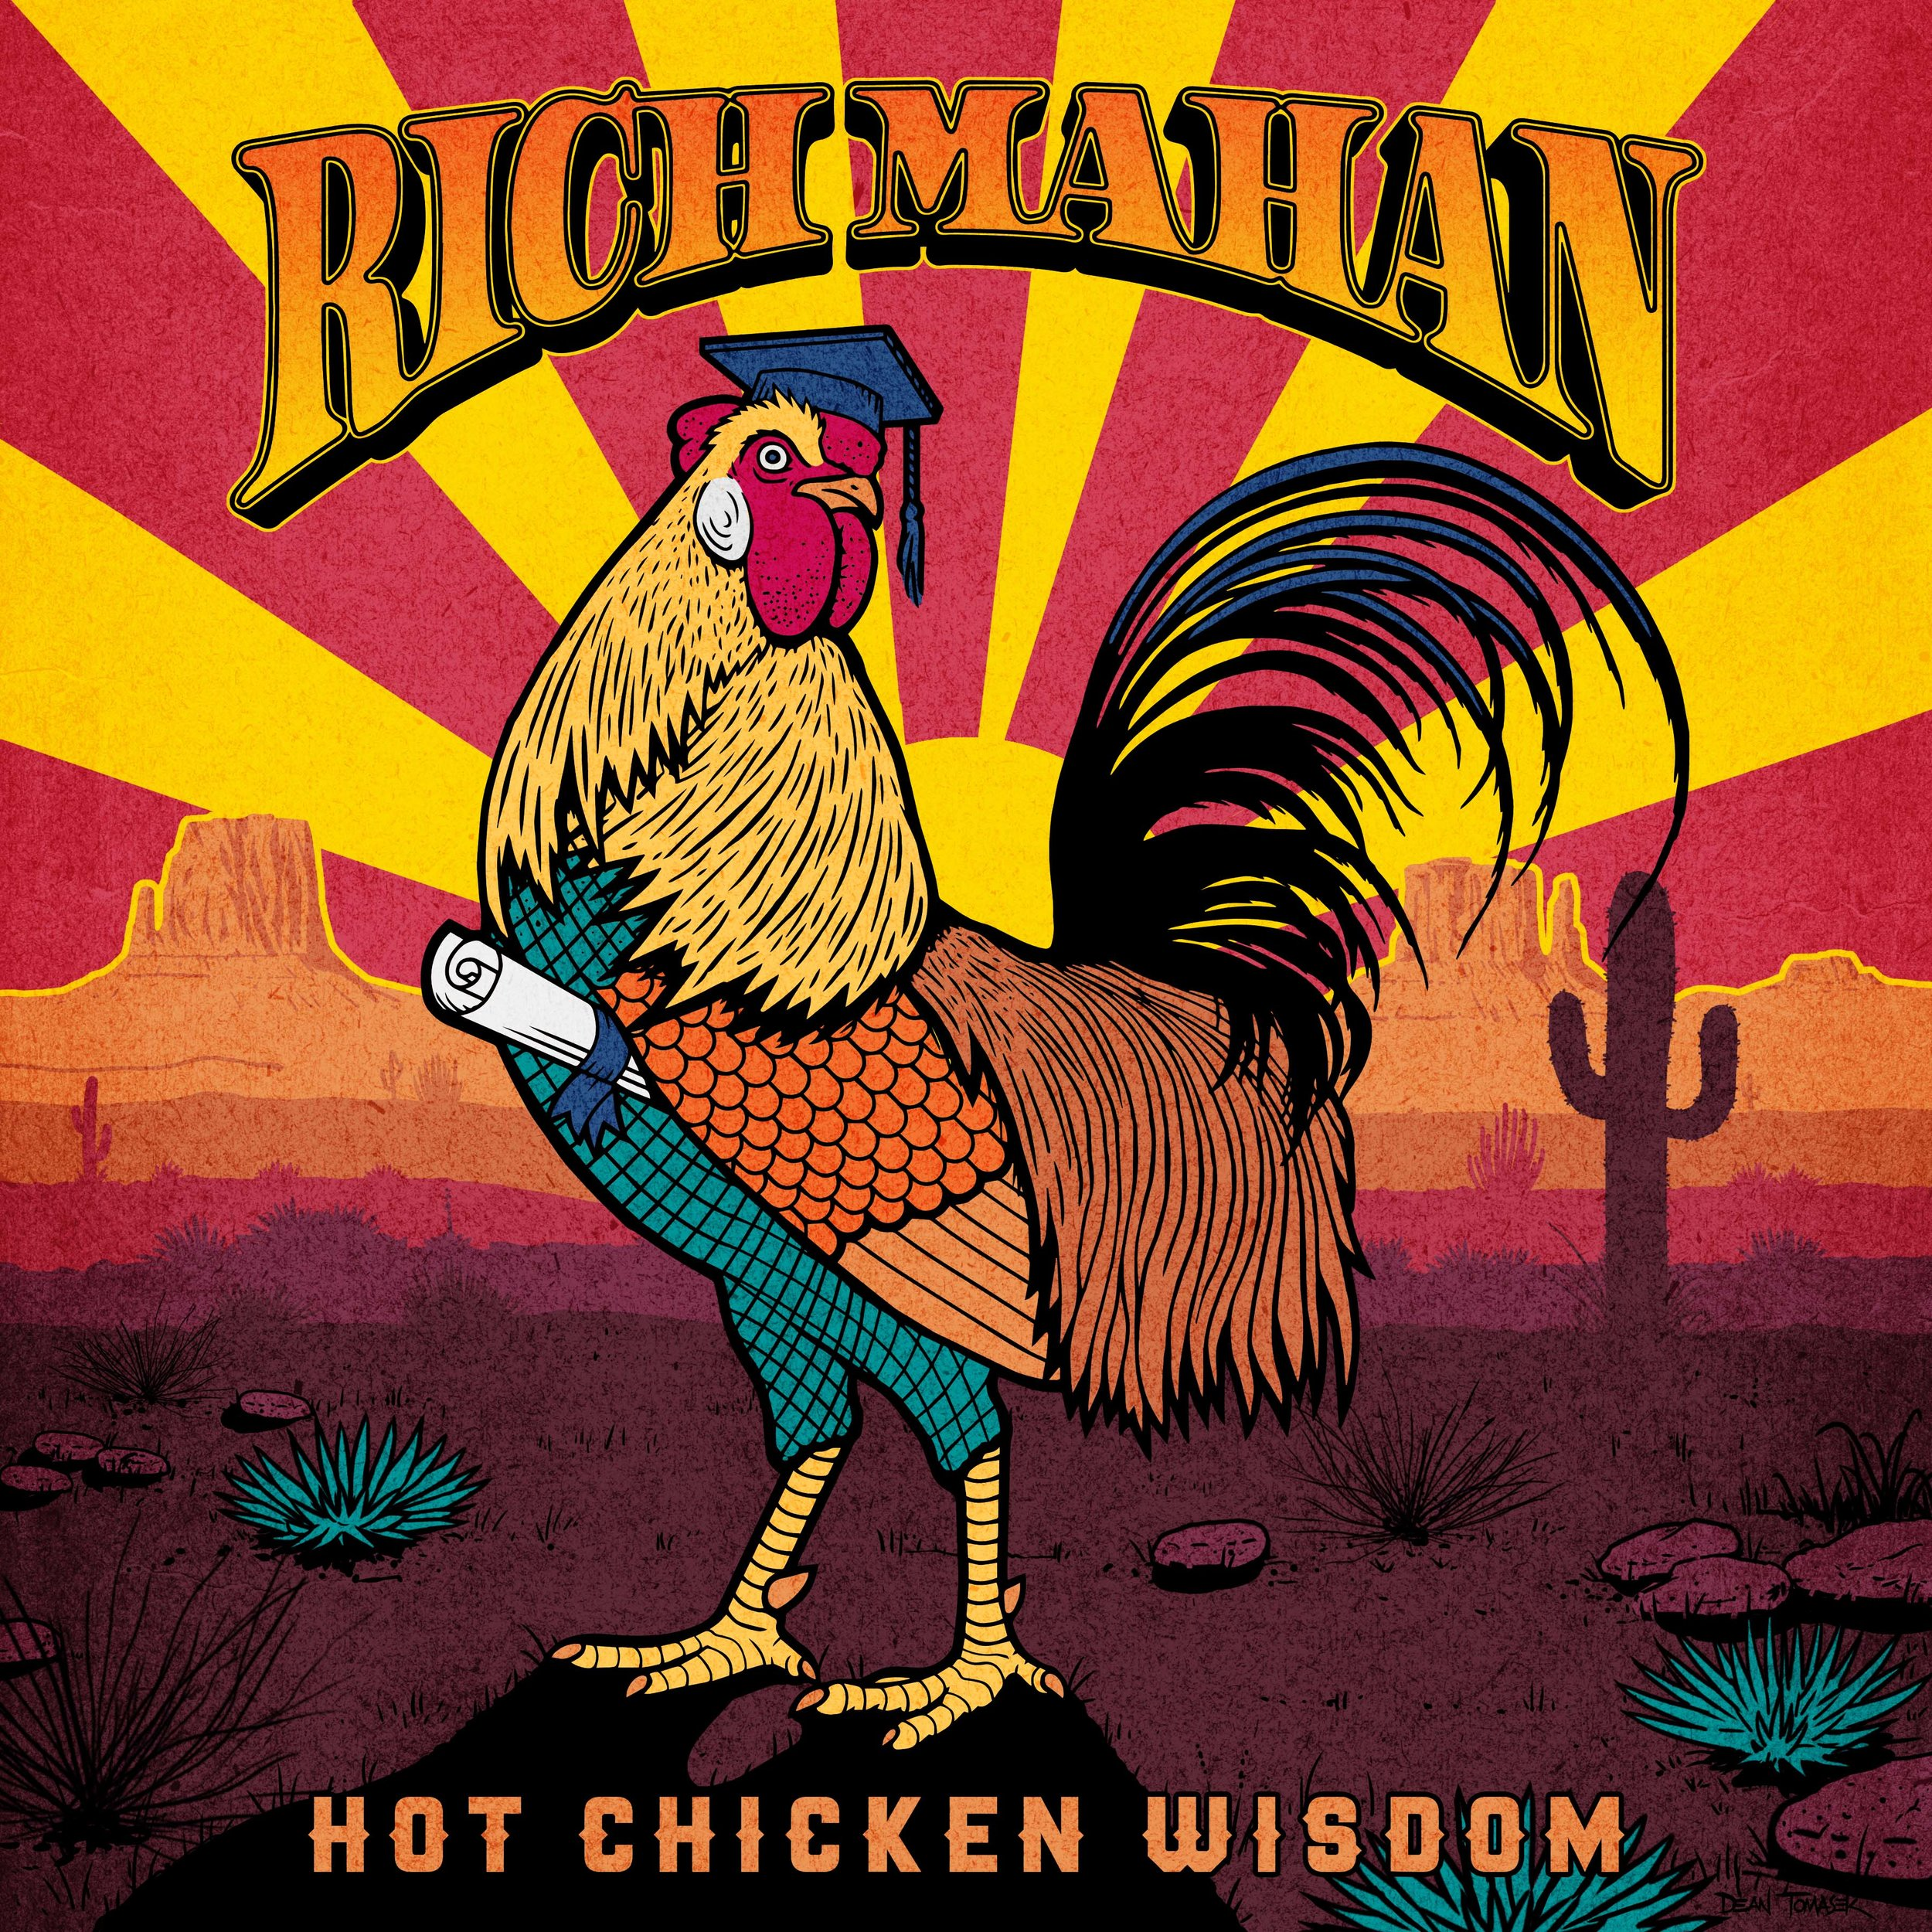 Rich Mahan - Hot Chicken Wisdom Cover.jpg